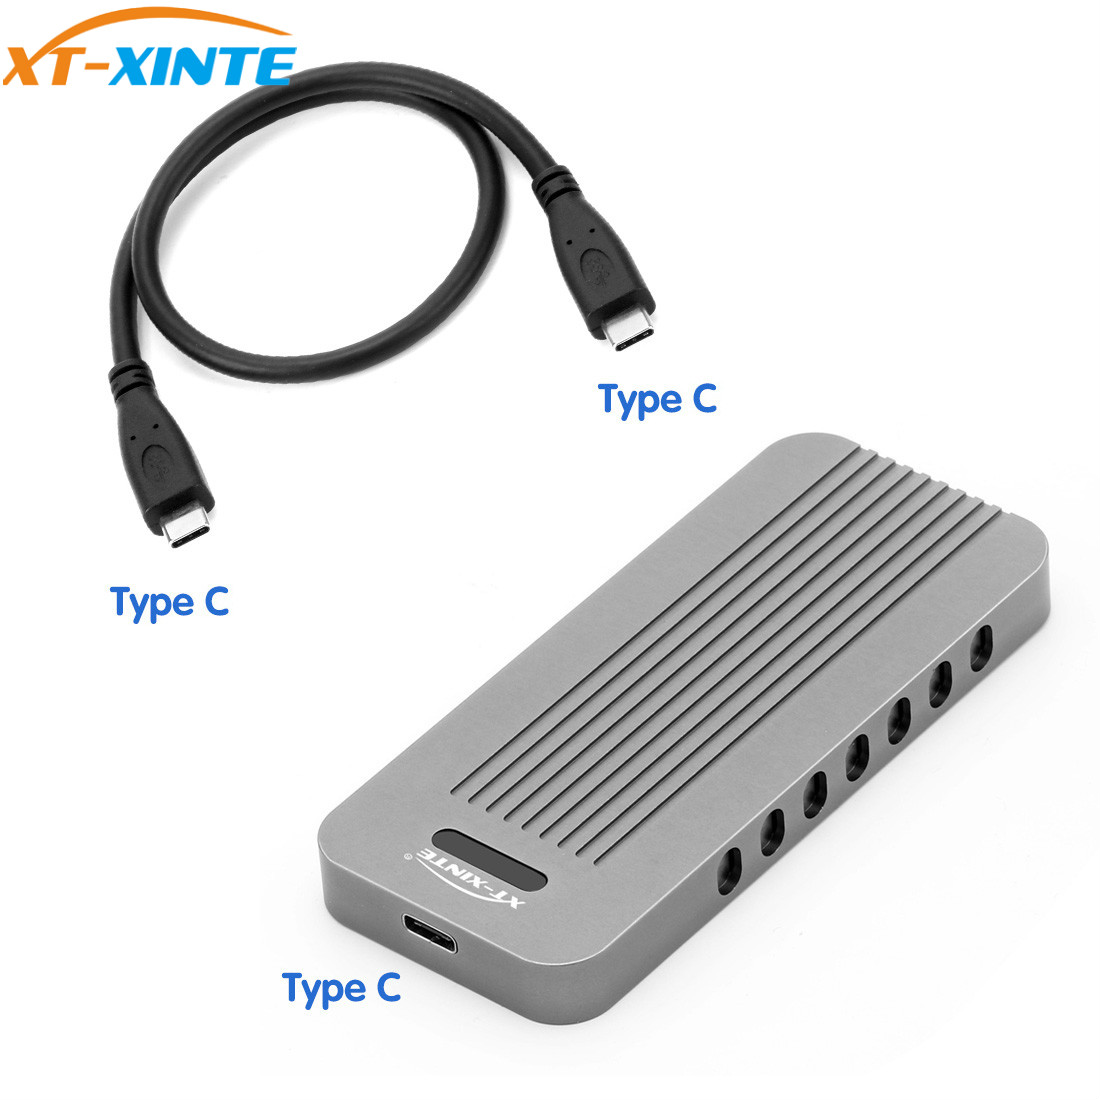 Aluminio externo M.2 a 10 Gbps USB 3,1 tipo C NVMe PCIe 3,0 SSD caja M clave NGFF USB3.1 caja HDD C a C Cable adaptador